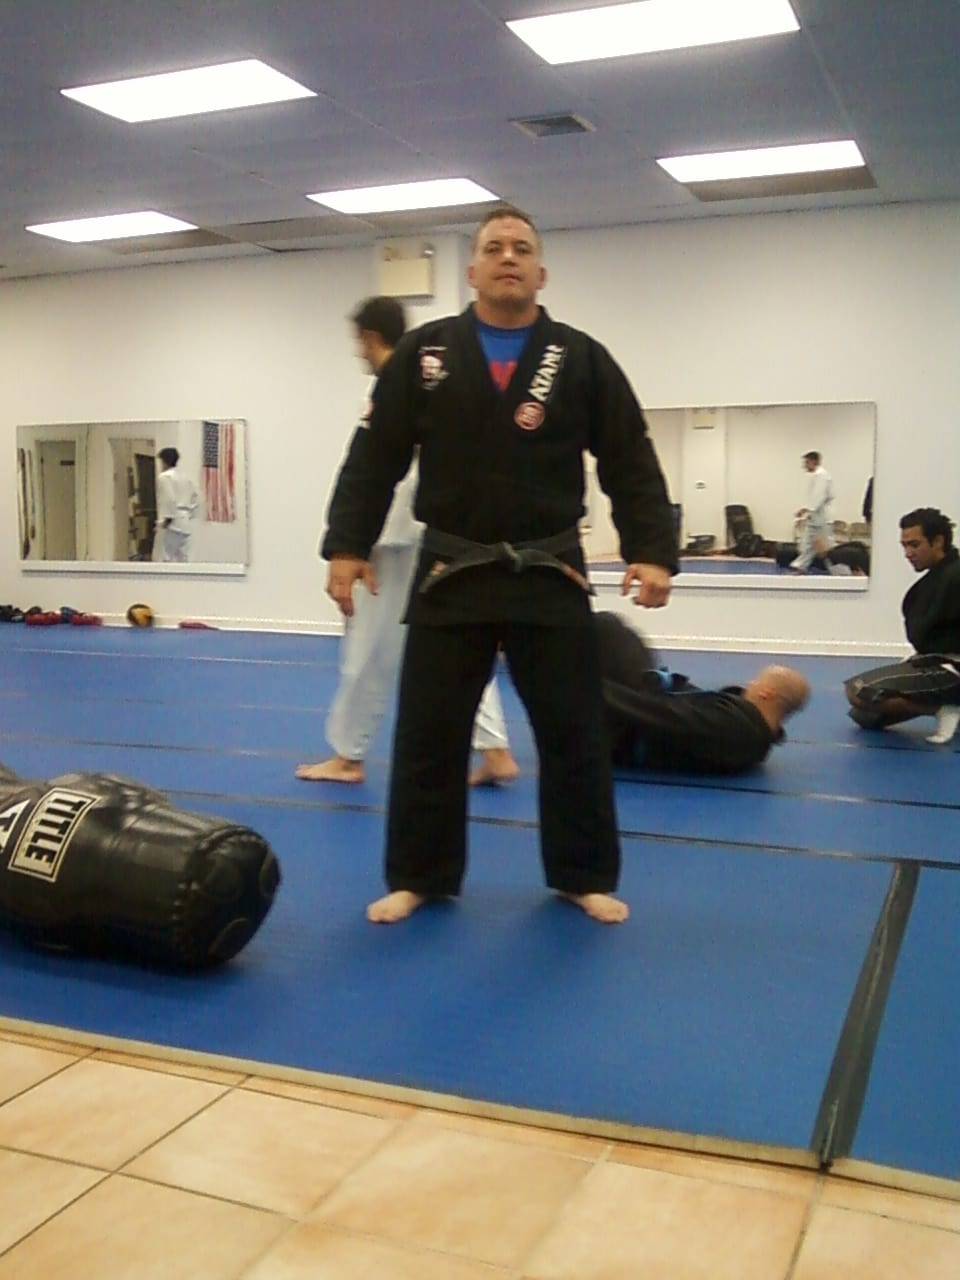 JOE DIAMOND in Philadelphia - Commando Krav Maga and Diamond Mixed Martial Arts